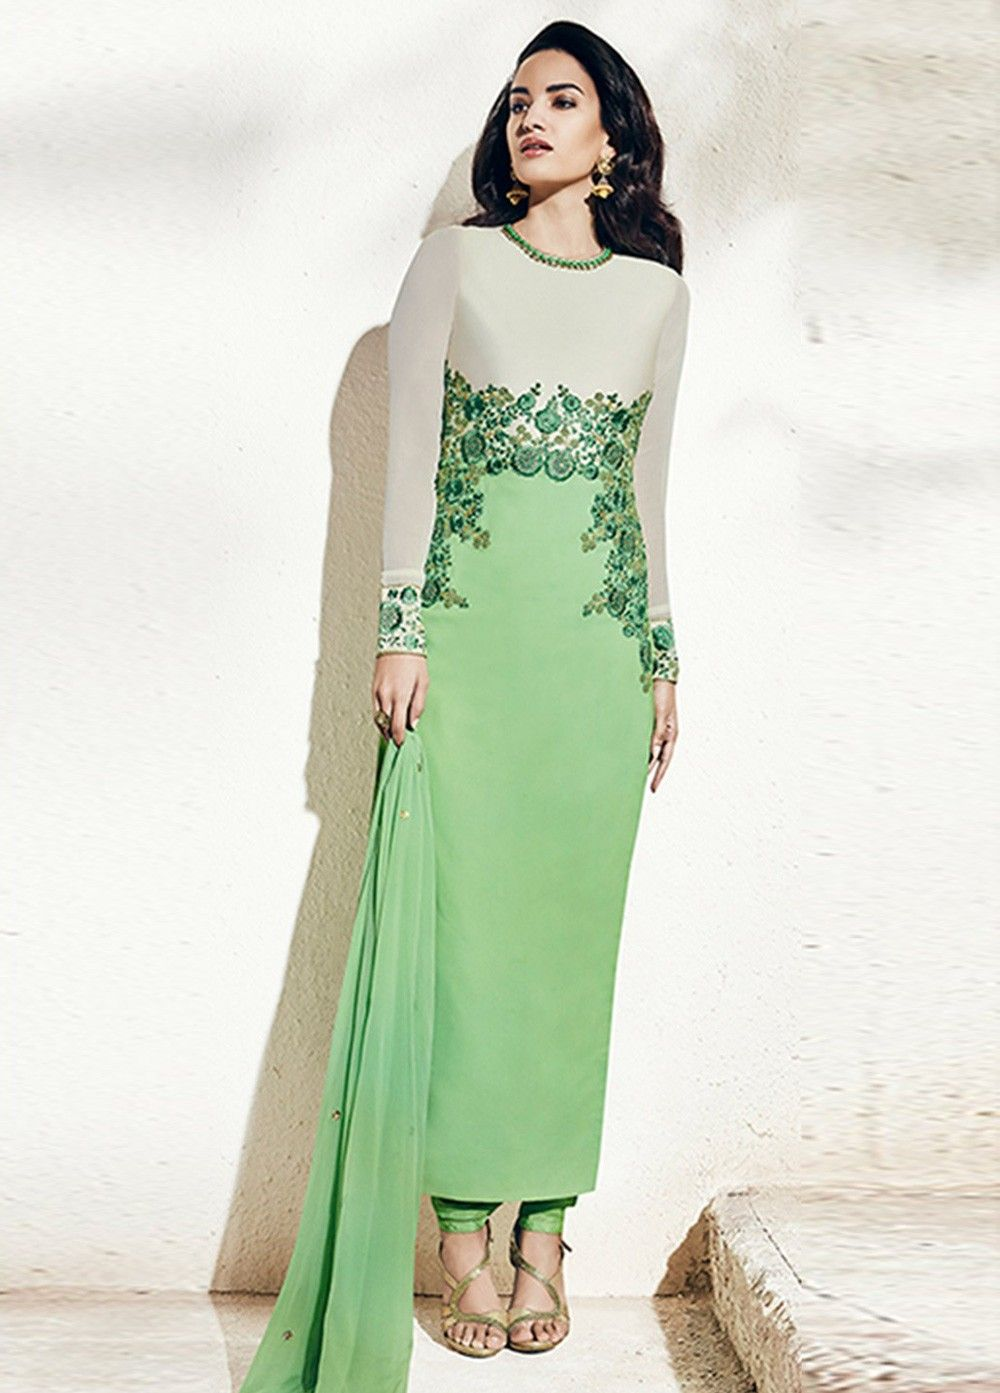 ca89db94d4 Buy Pista green color georgette party wear straight cut salwar kameez at  kollybollyethnics with free worldwide shipping.